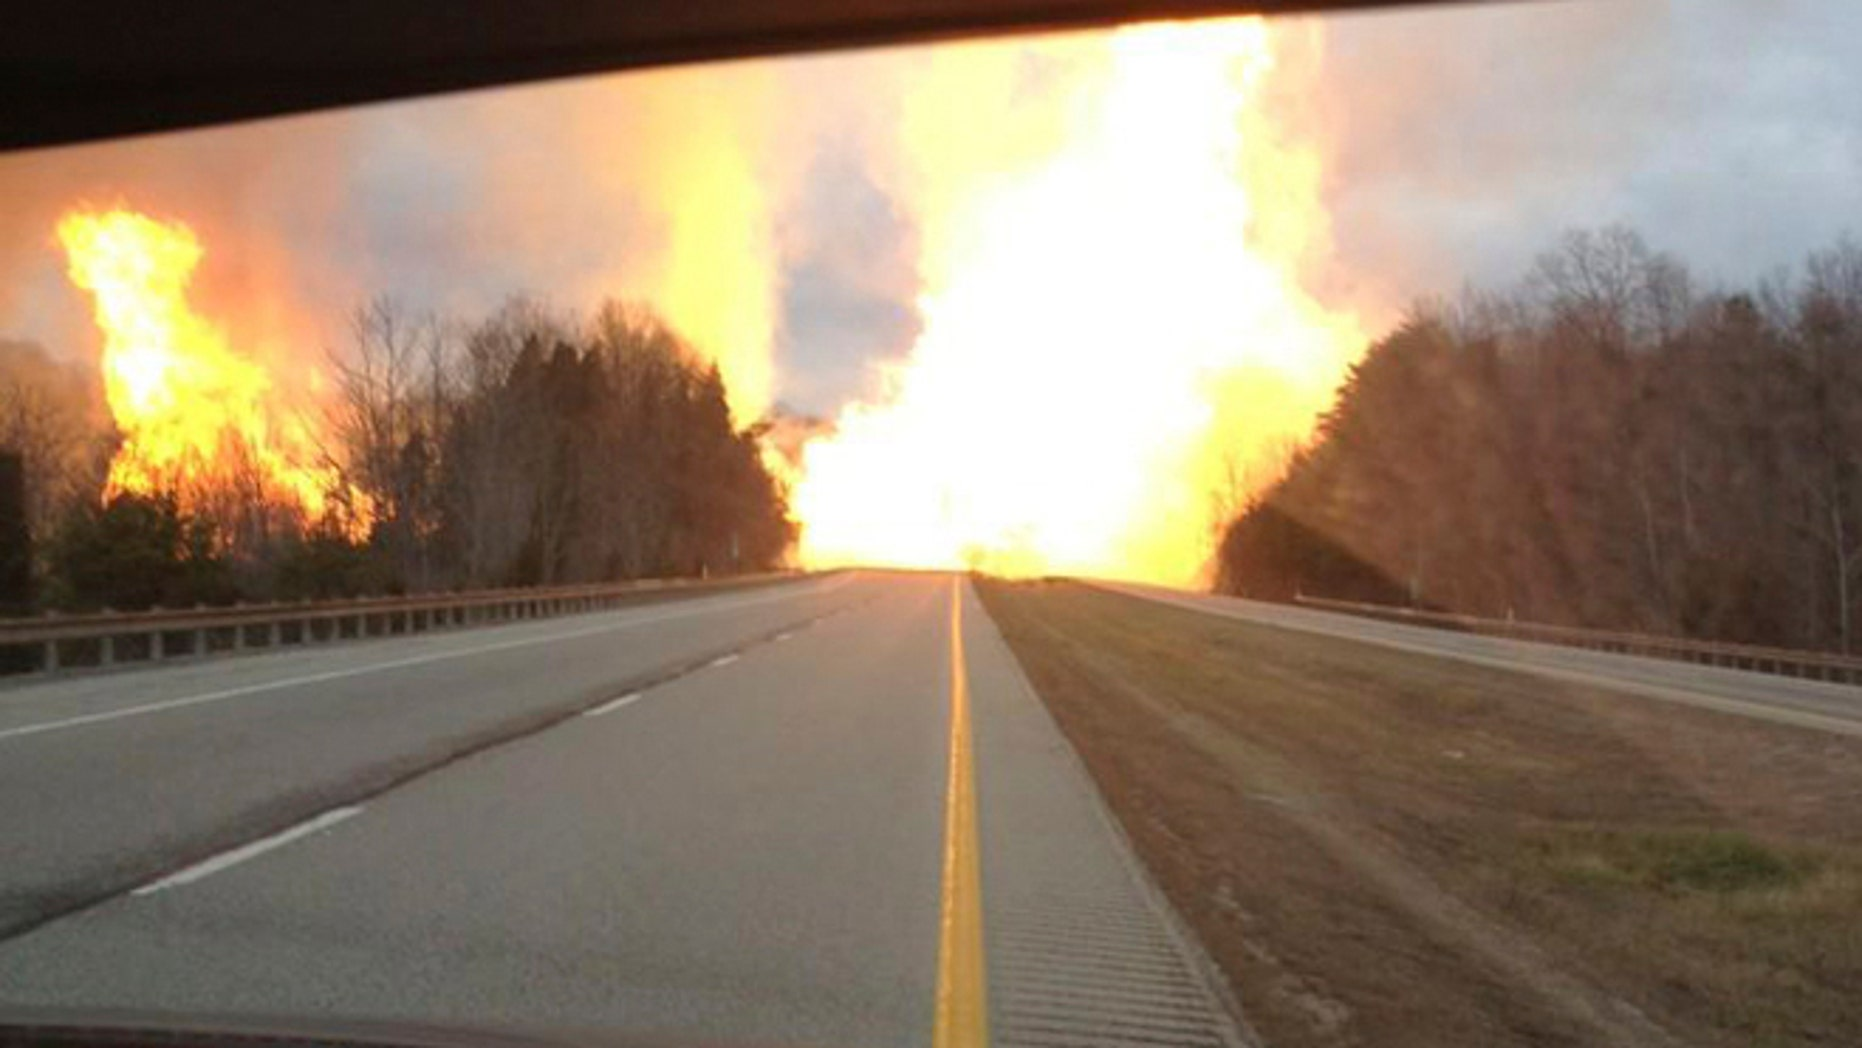 Dec. 11, 2012: This image provided by the Kanawha County Emergency Services shows flames erupting across Interstate 77 from a gas line explosion in Sissonville, W. Va.